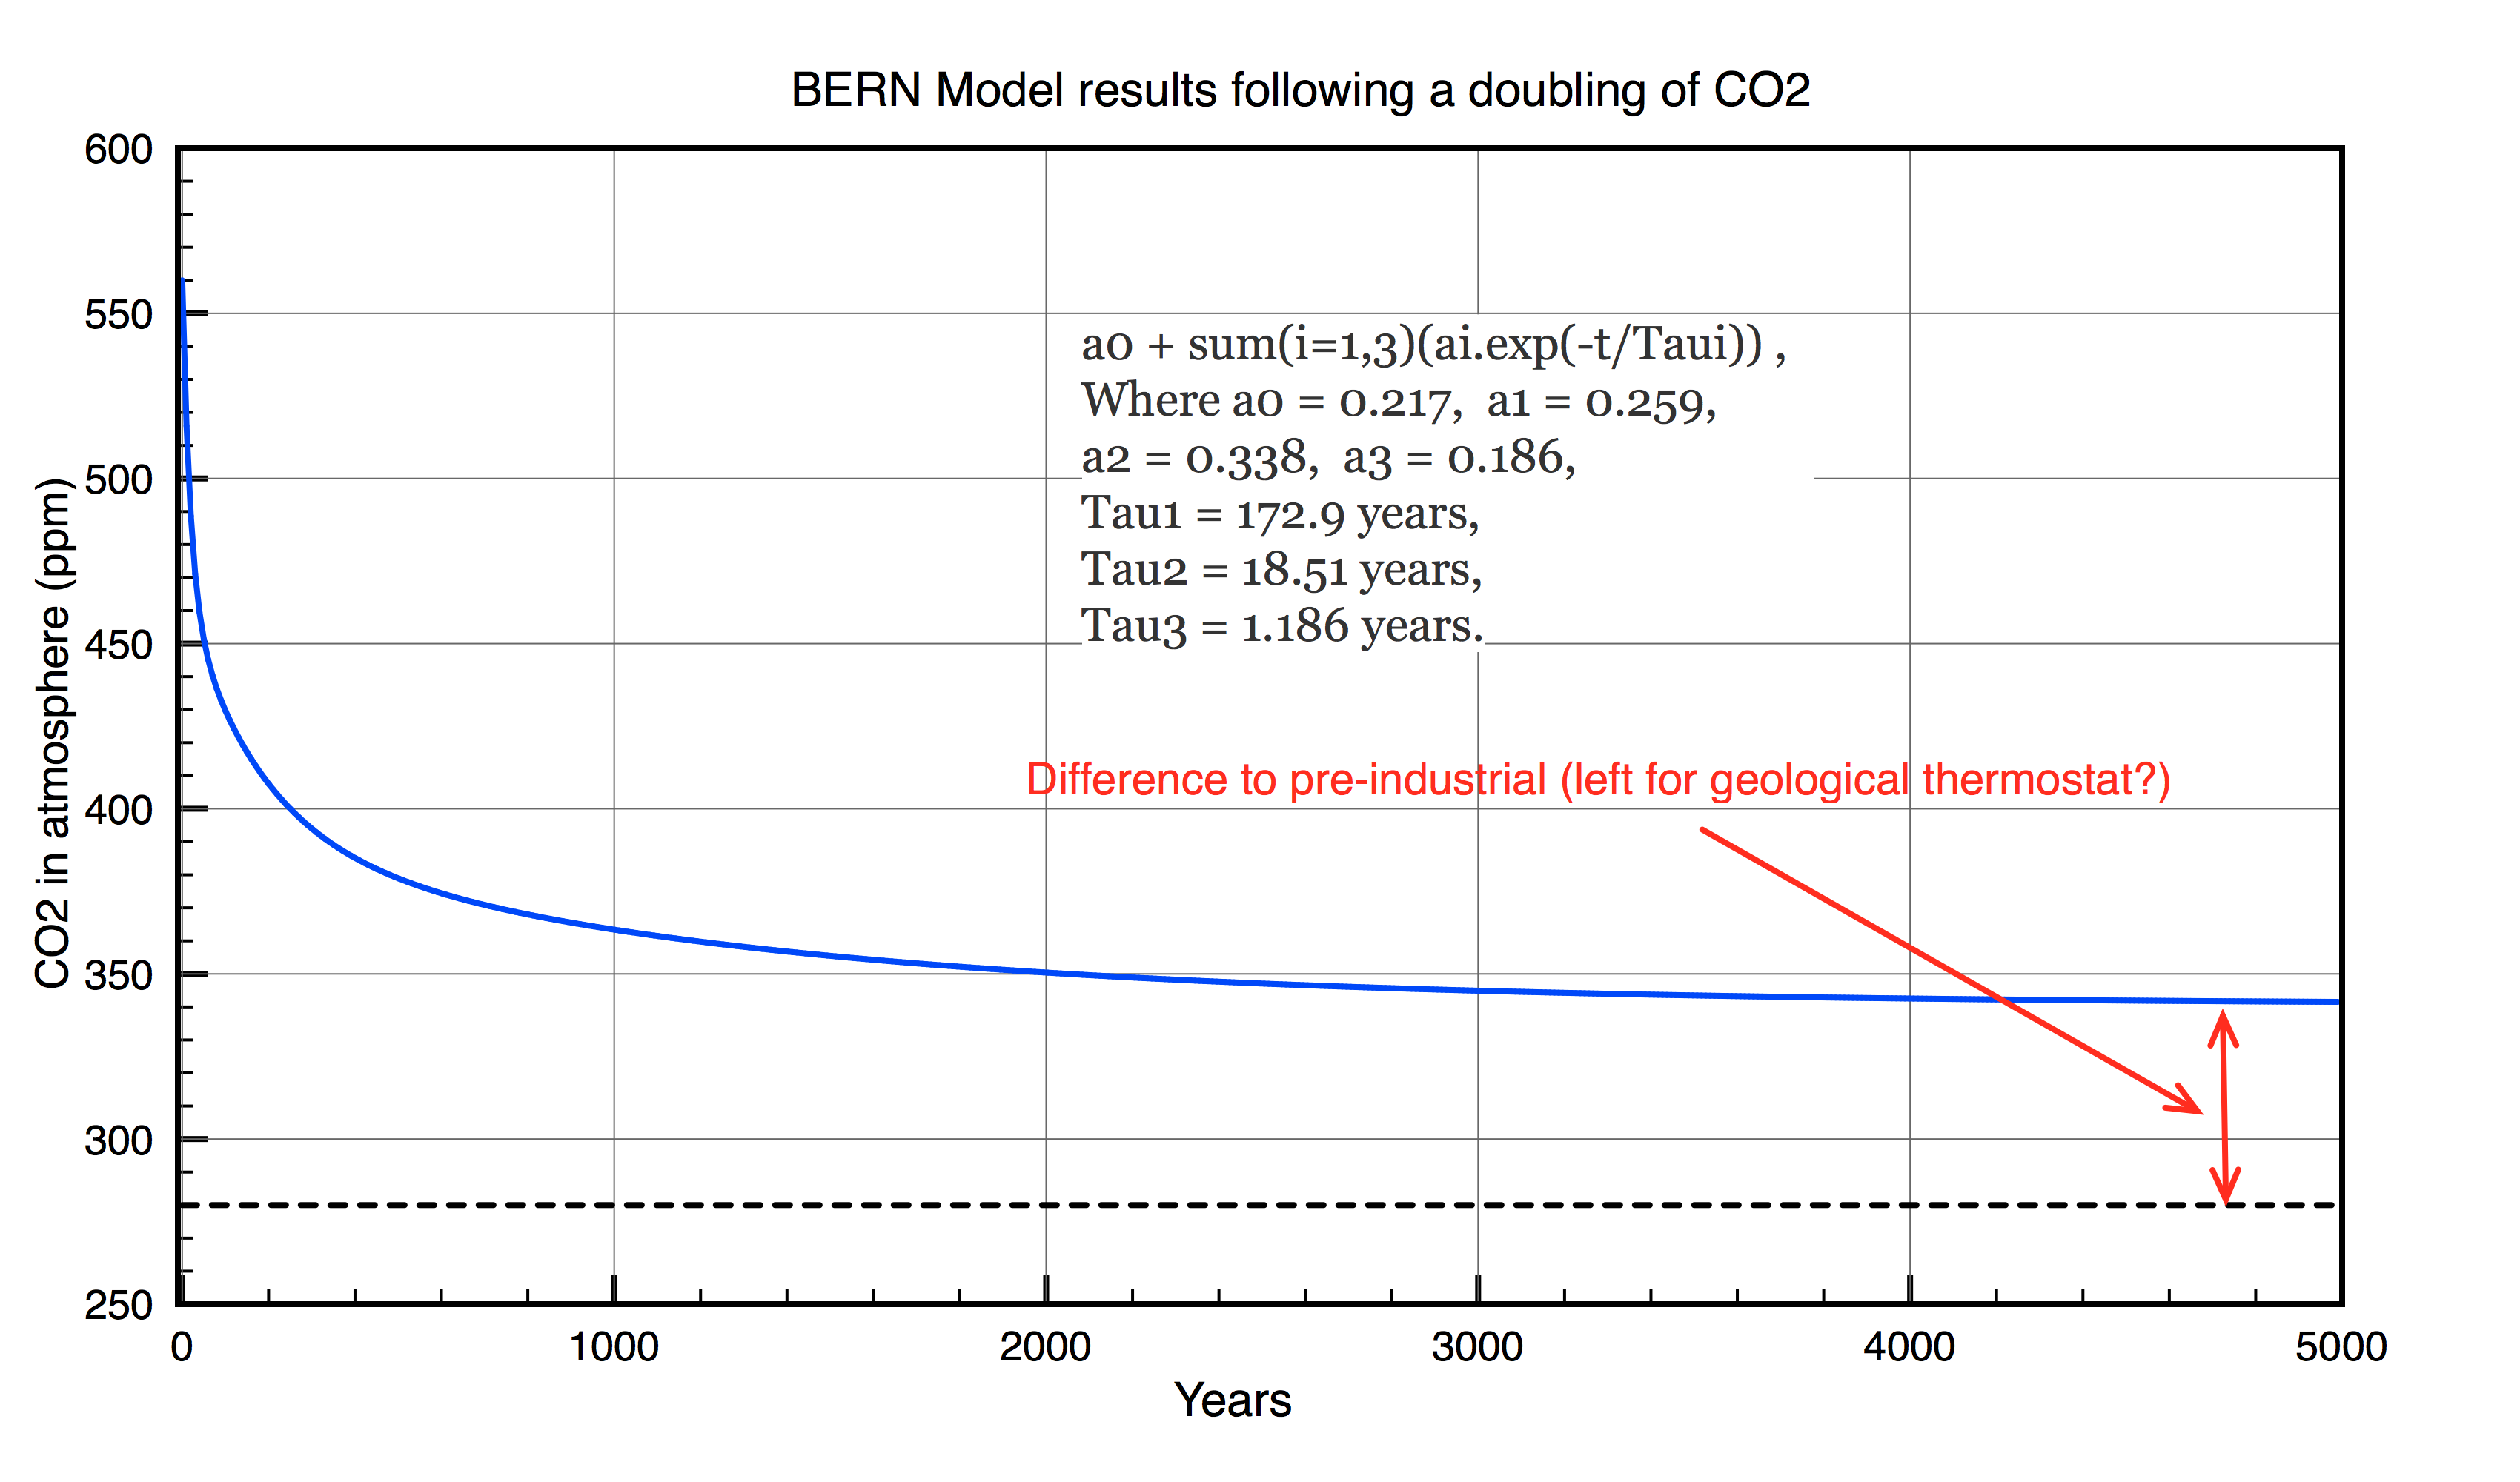 Bern Model calculation of CO2 levels following a doubling of CO2 in the atmosphere.